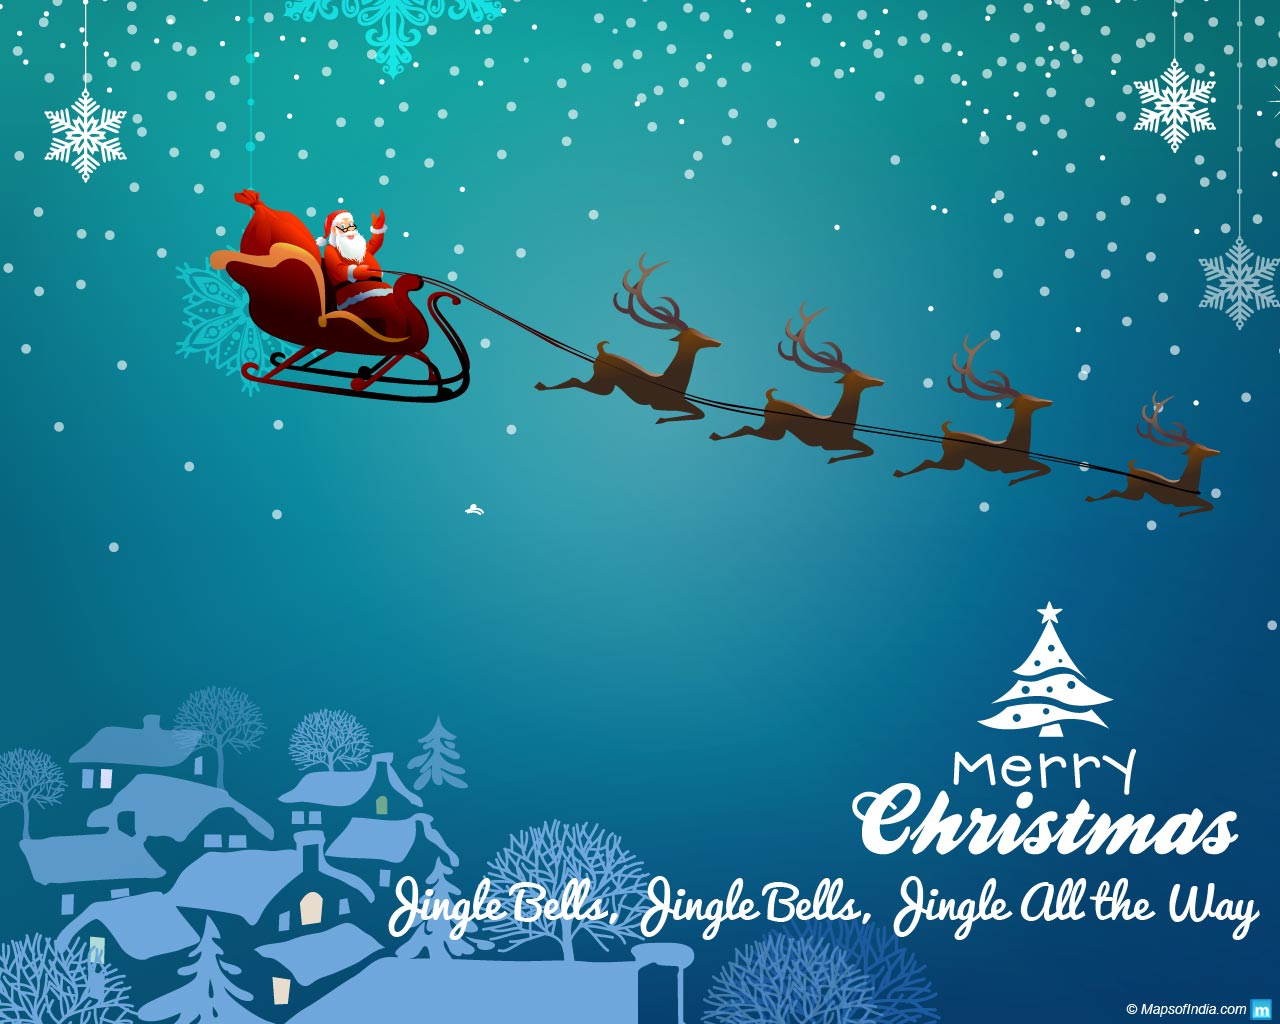 Christmas Wallpapers and Images 2018 Download Christmas 1280x1024